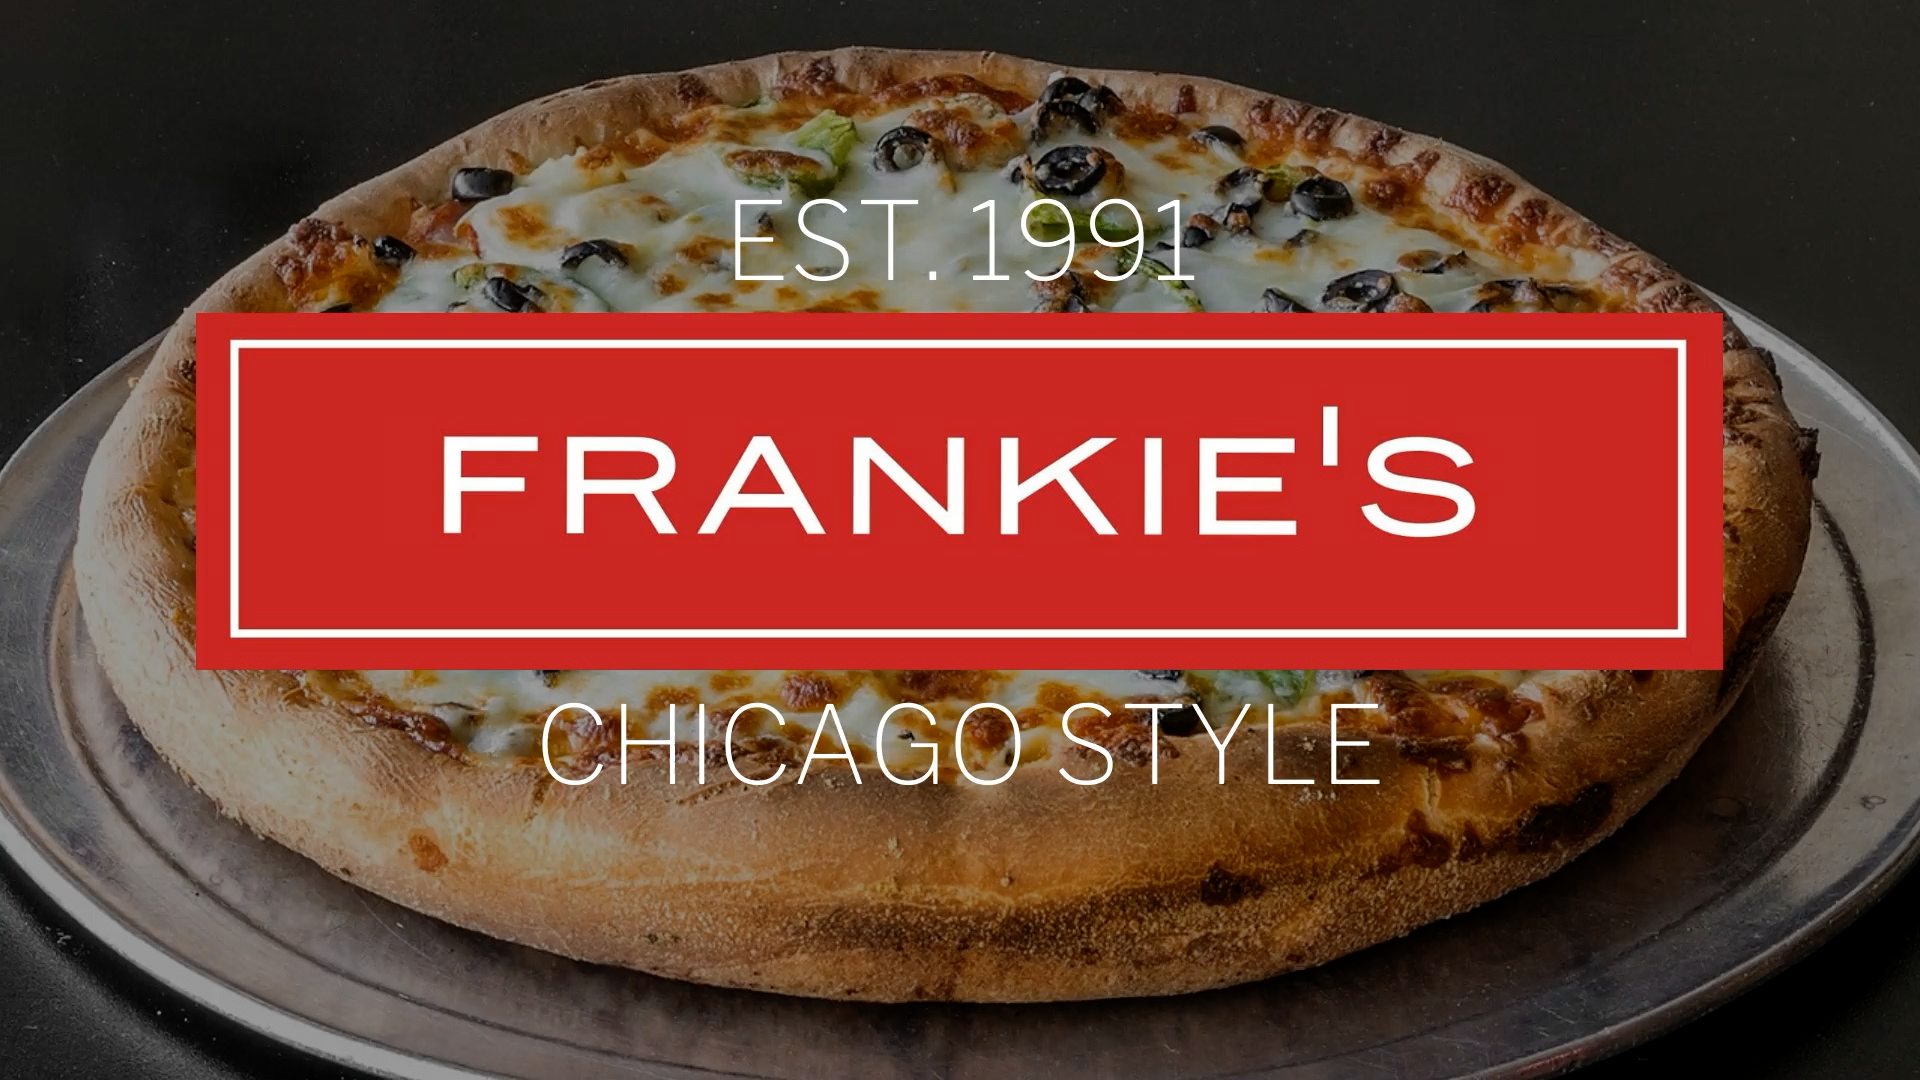 Frankie's Chicago Style